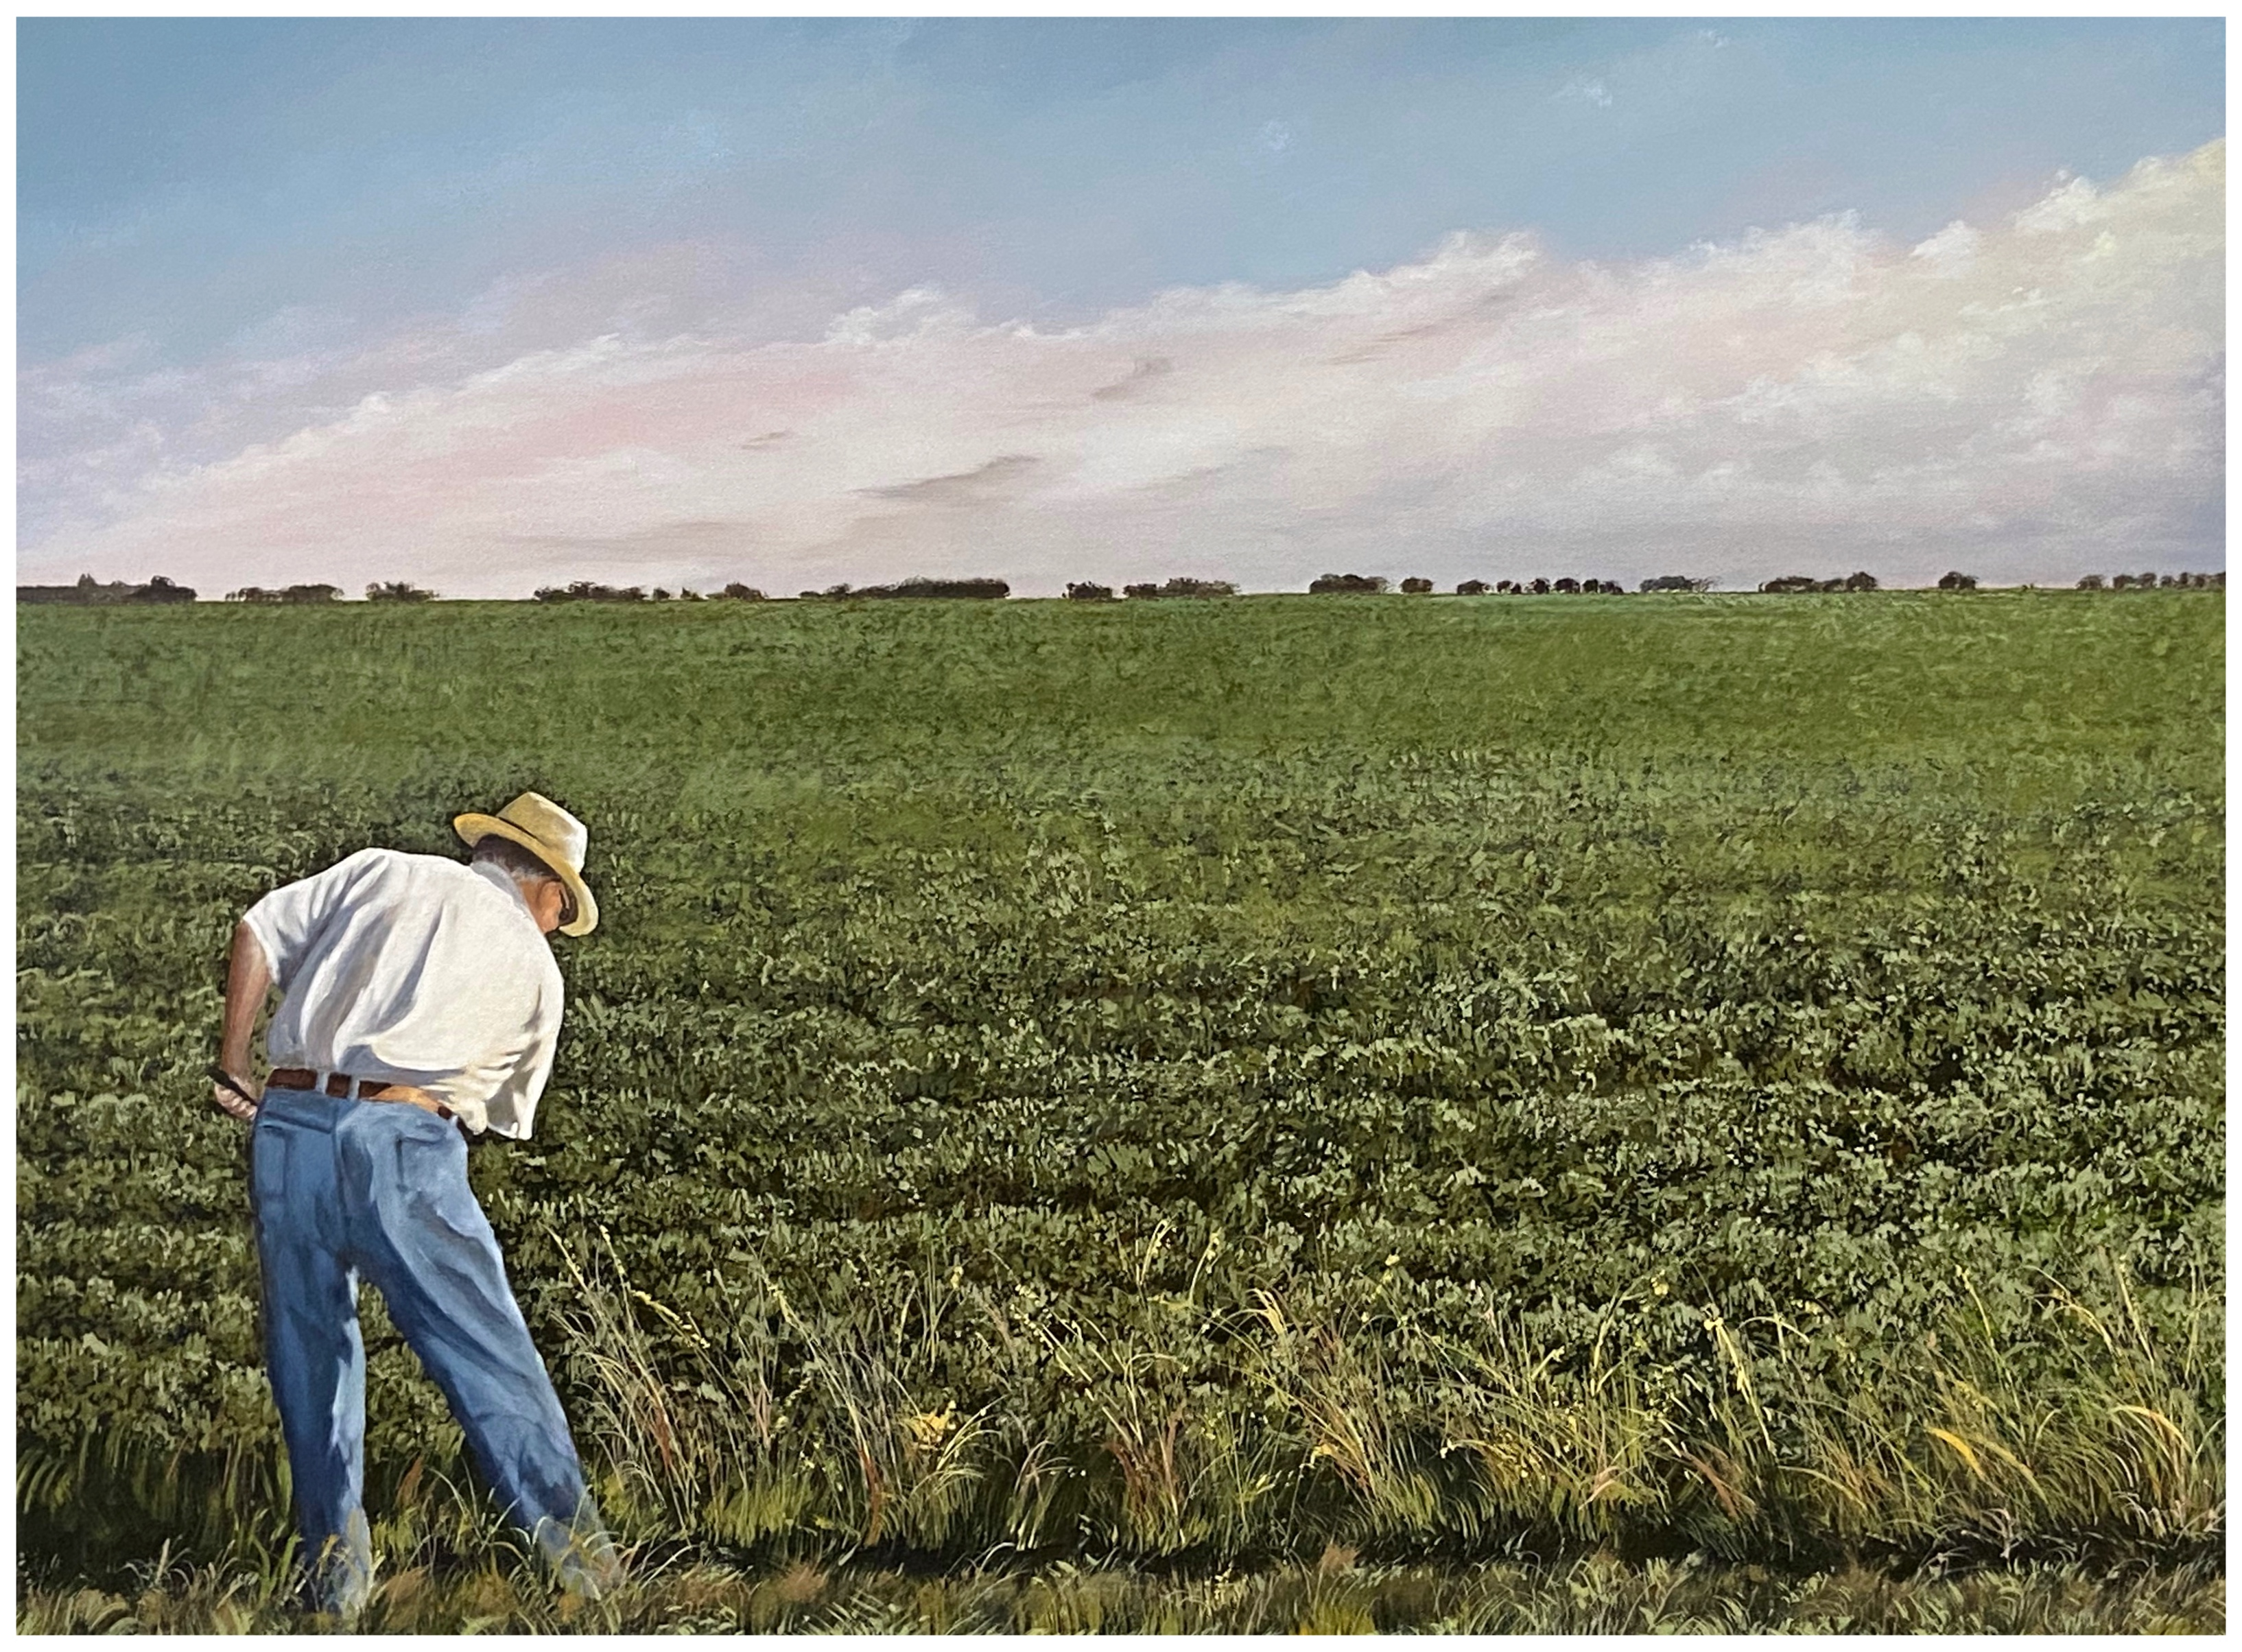 Father in the Field, Oil on Canvas, June 2020